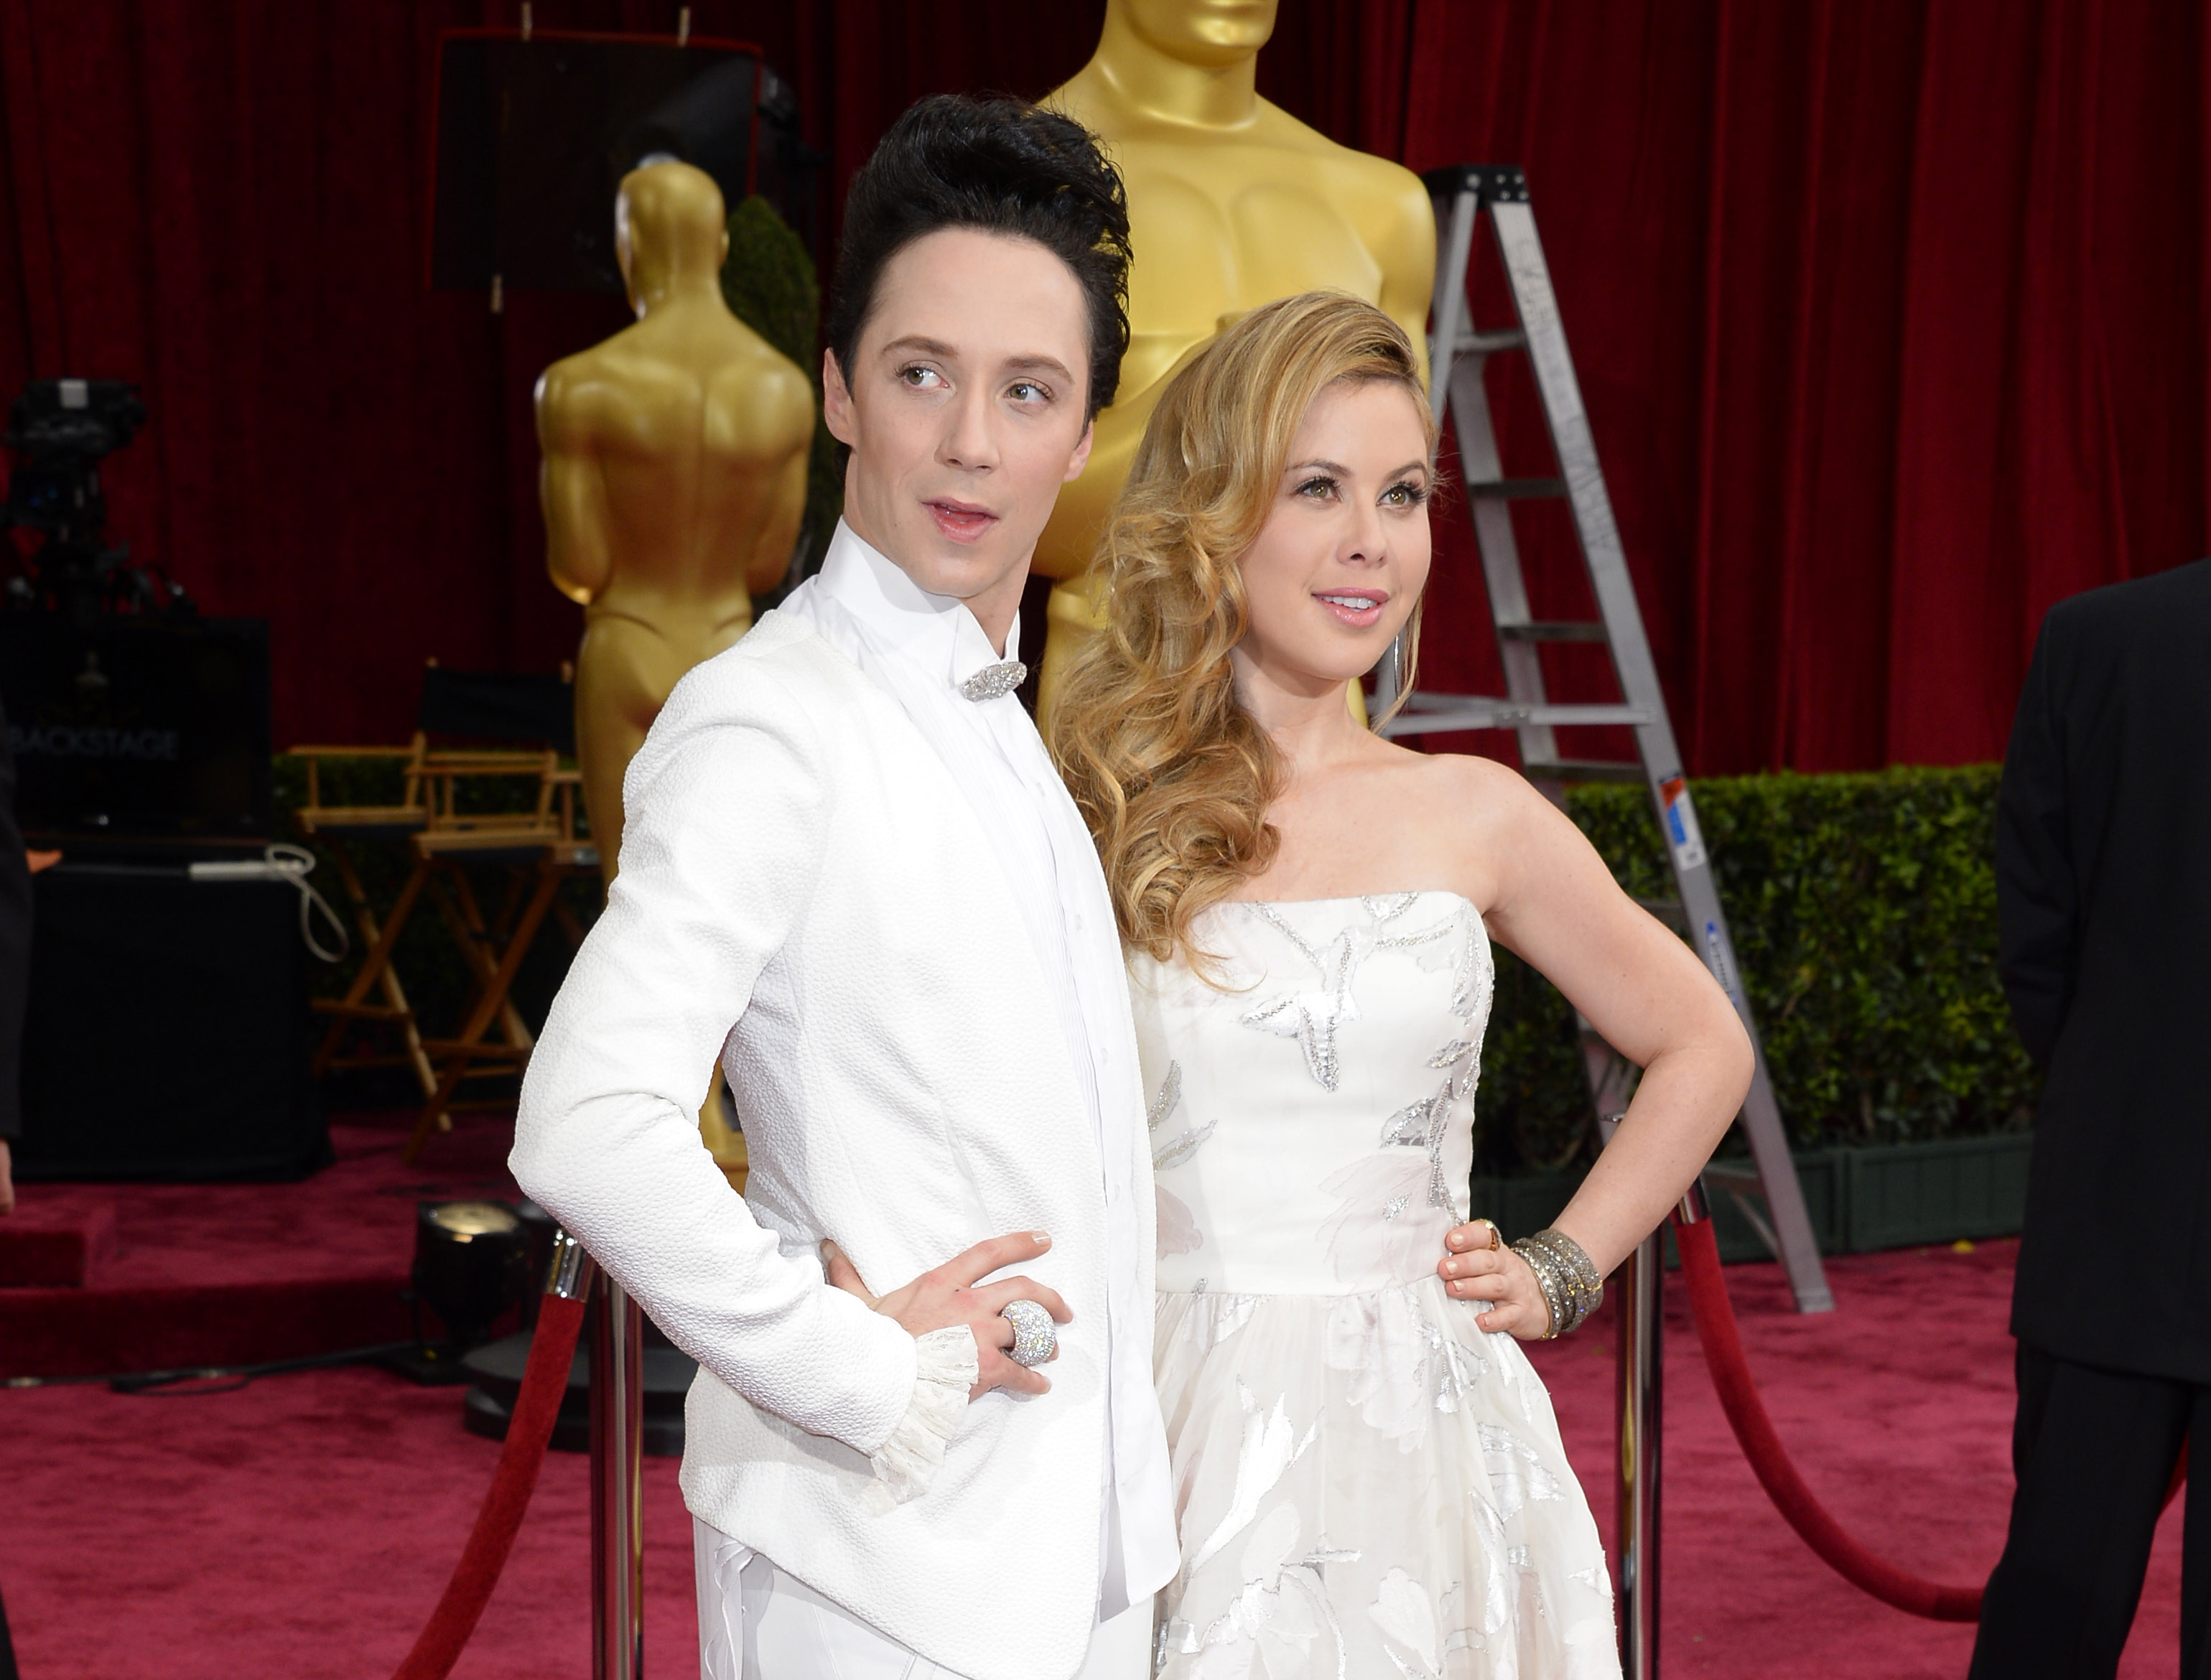 FILE - This March 2, 2014, file photo shows Johnny Weir, left, and Tara Lipinski at the Oscars in Los Angeles. Weir and Lipinski will serve as correspondents for NBCs coverage of the Rio de Janeiro Olympics. The network announced Monday, May 2, 2016, that